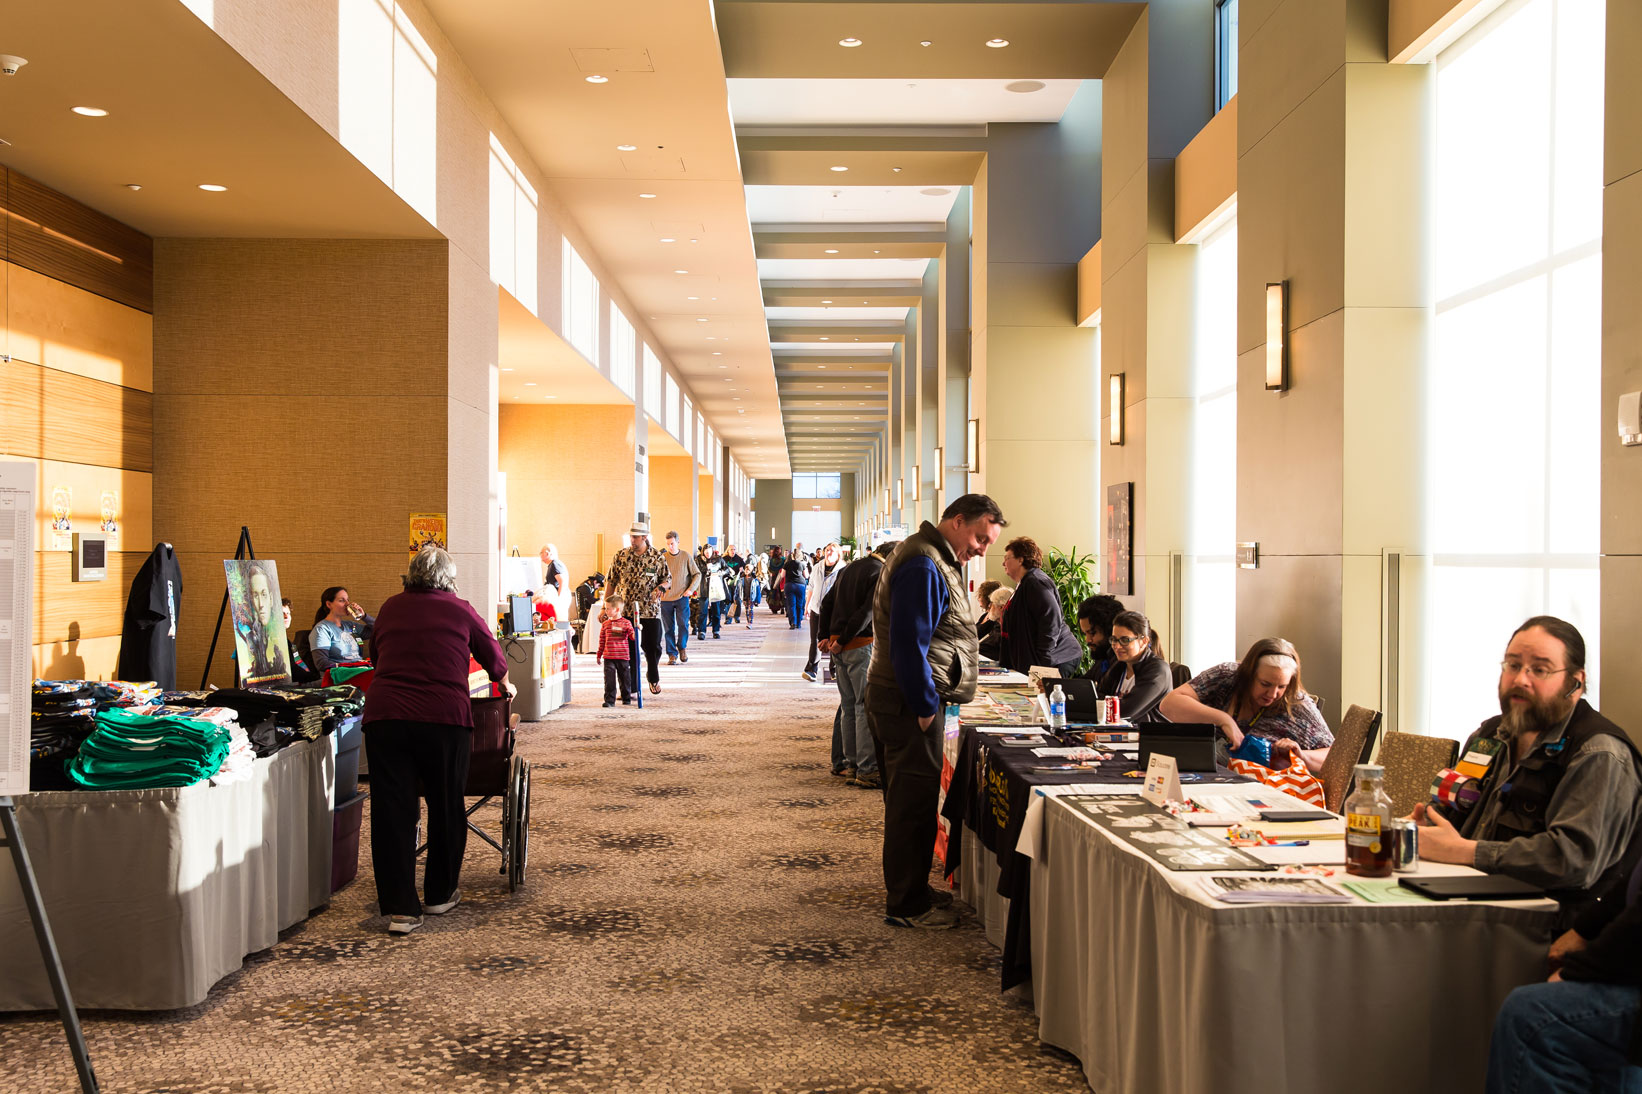 Picture of the hallway outside of dealers with people talking and walking